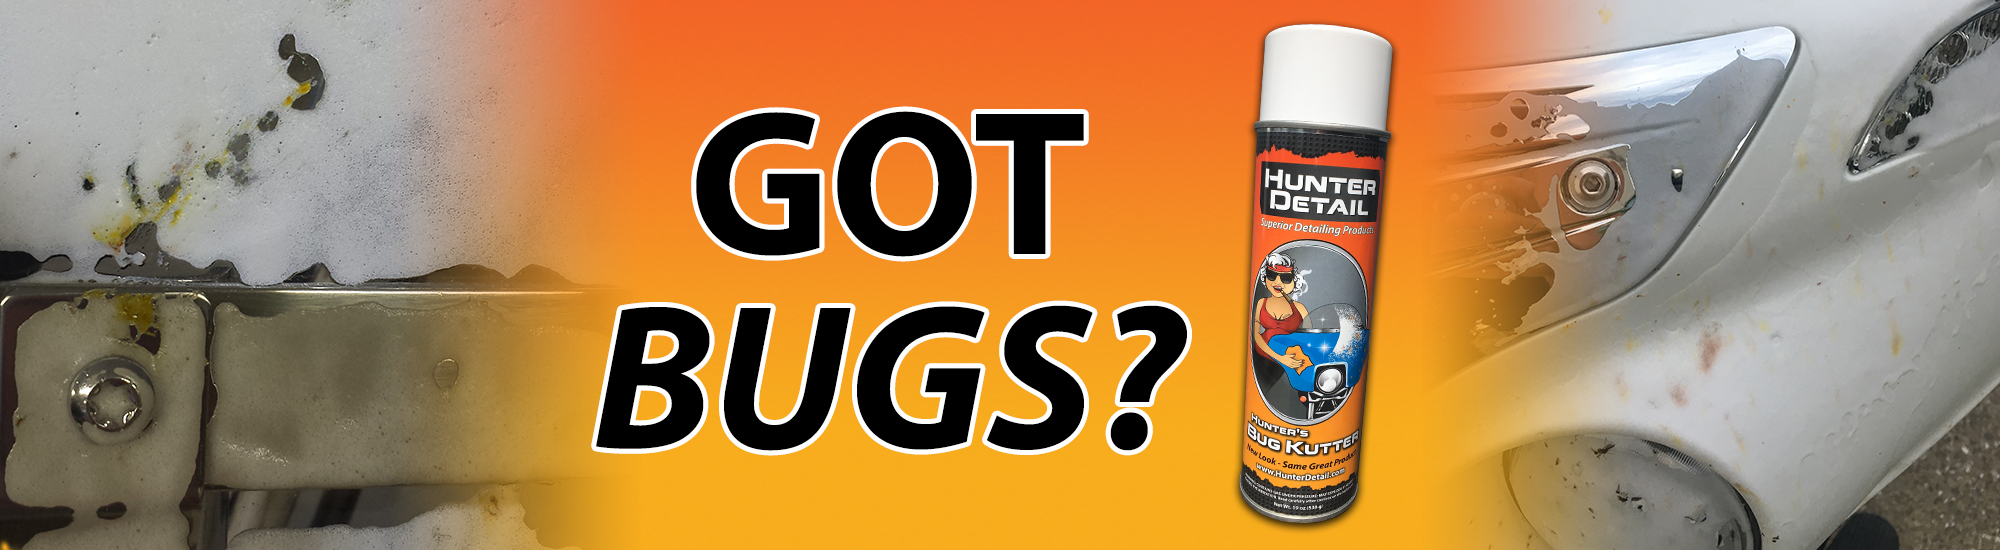 Got Bugs? No Problem with Hunter's Bug Kutter